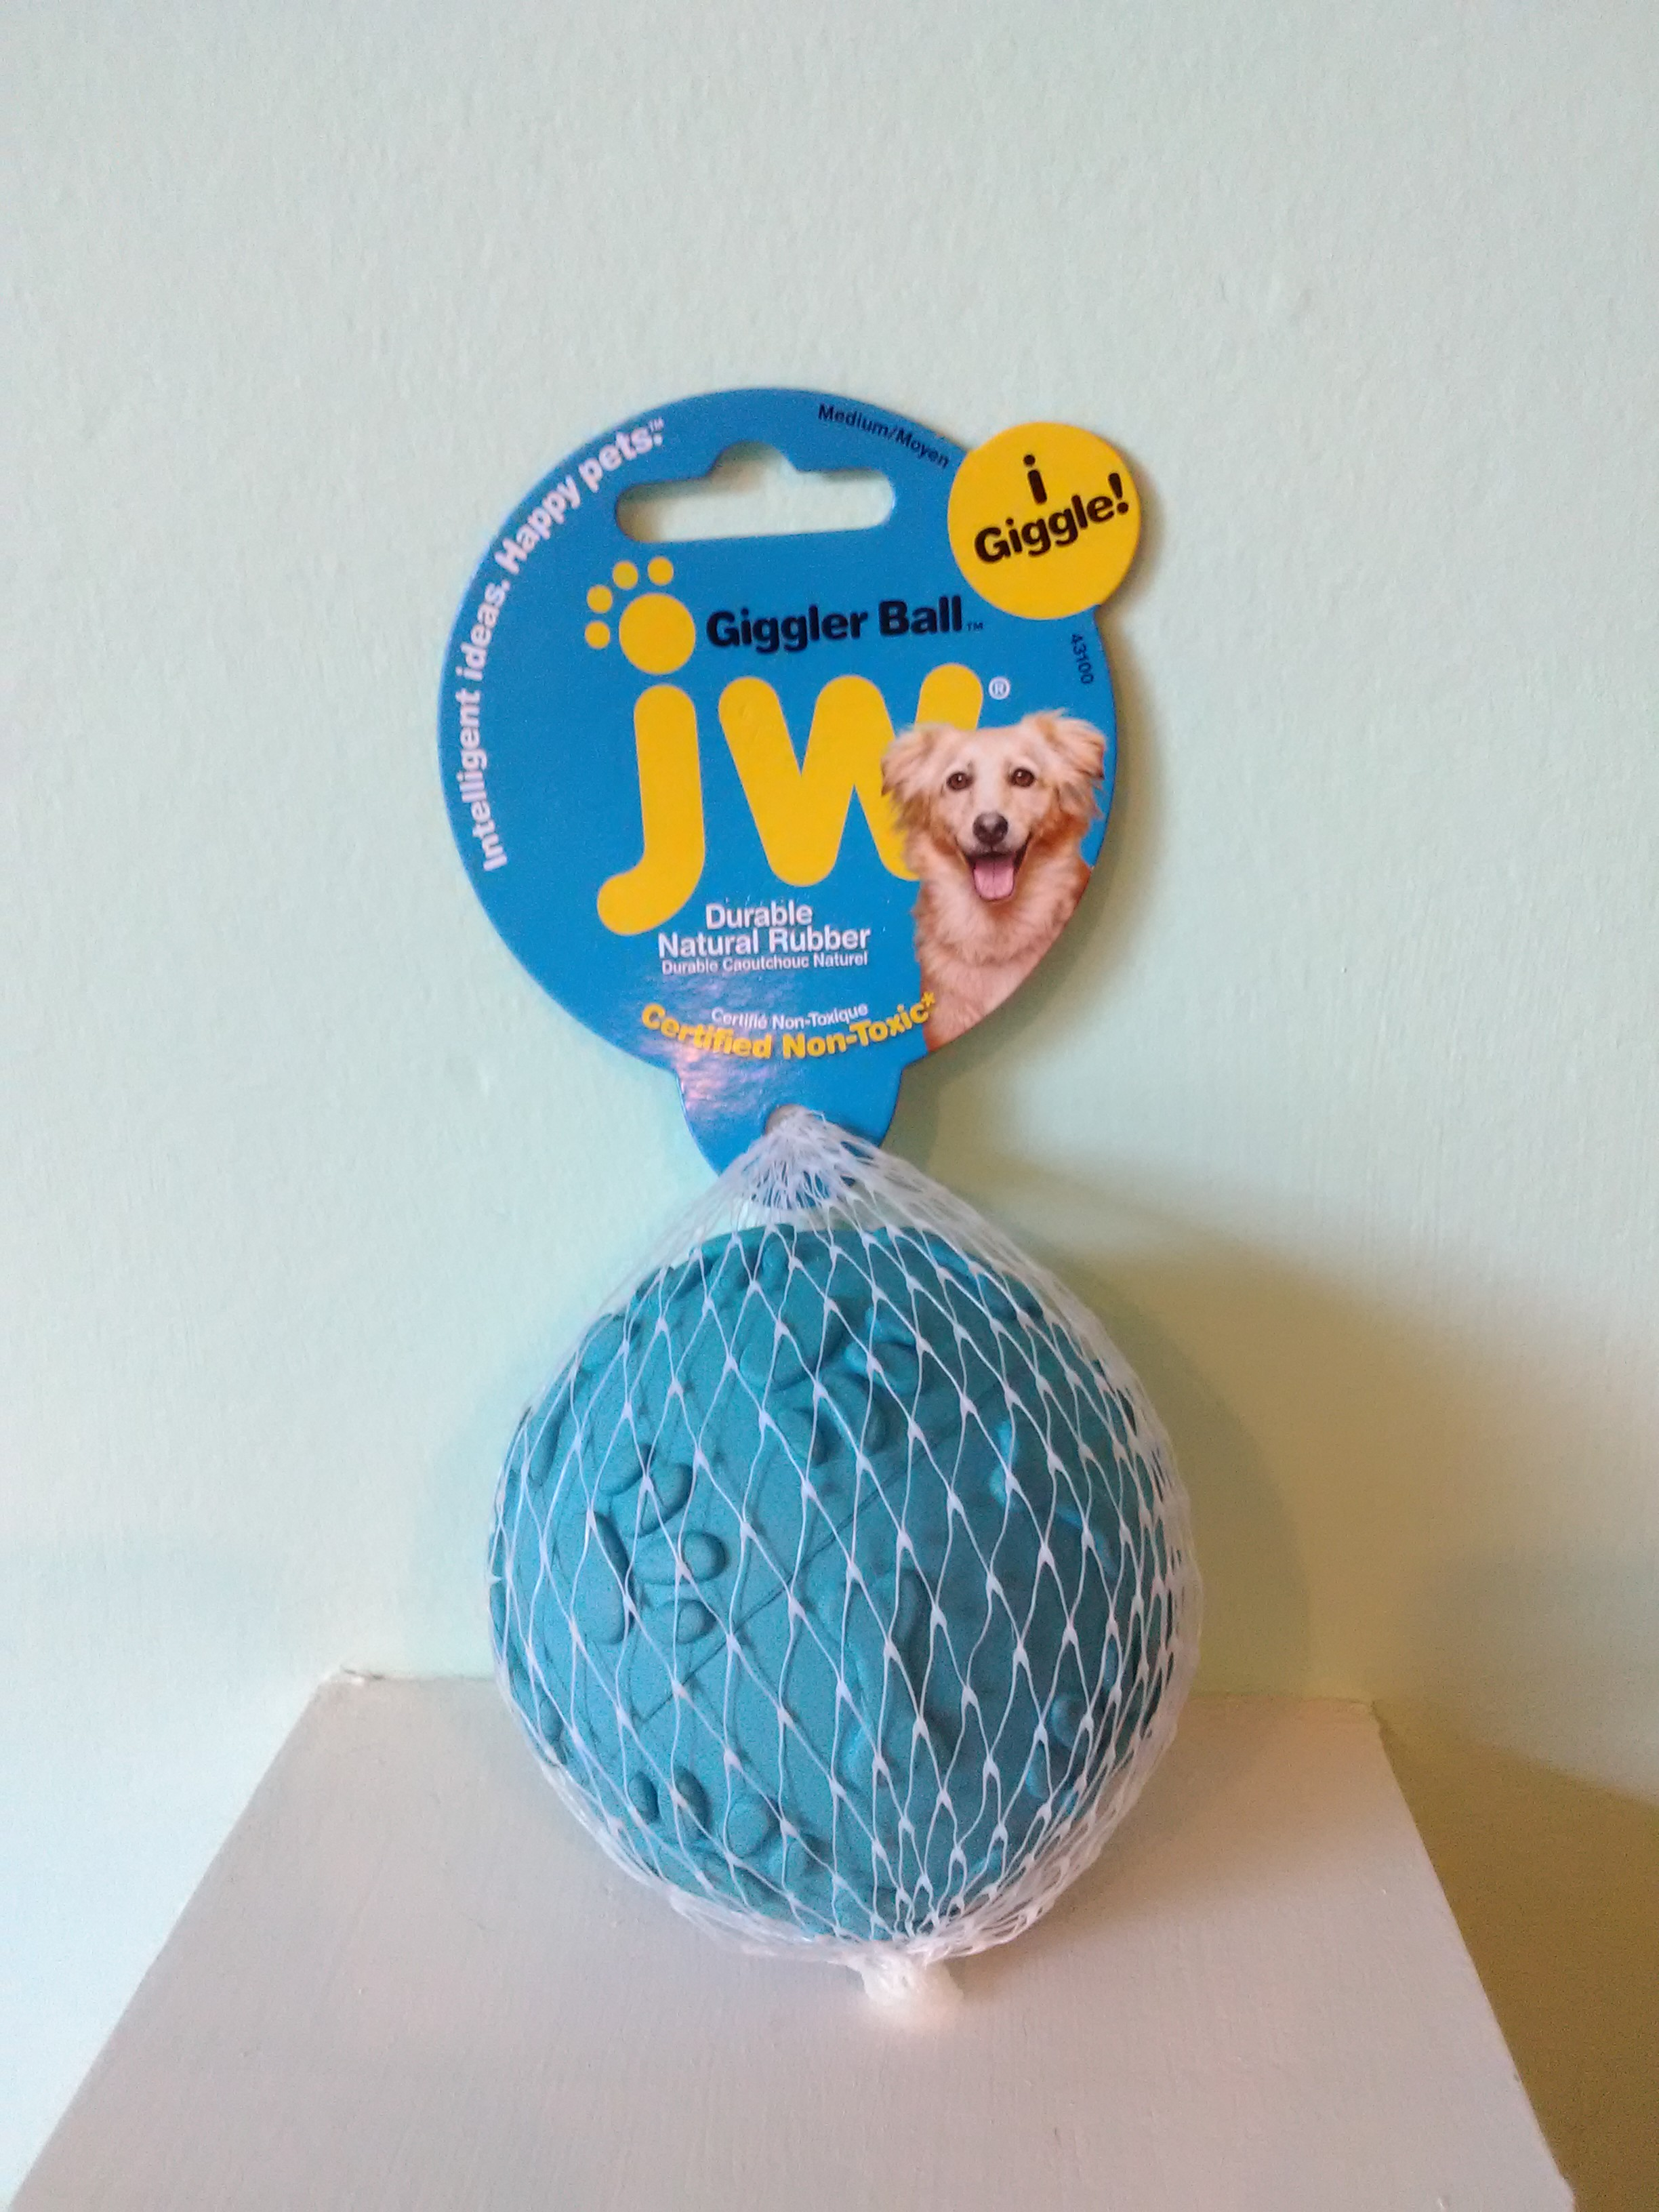 JW Giggler Ball